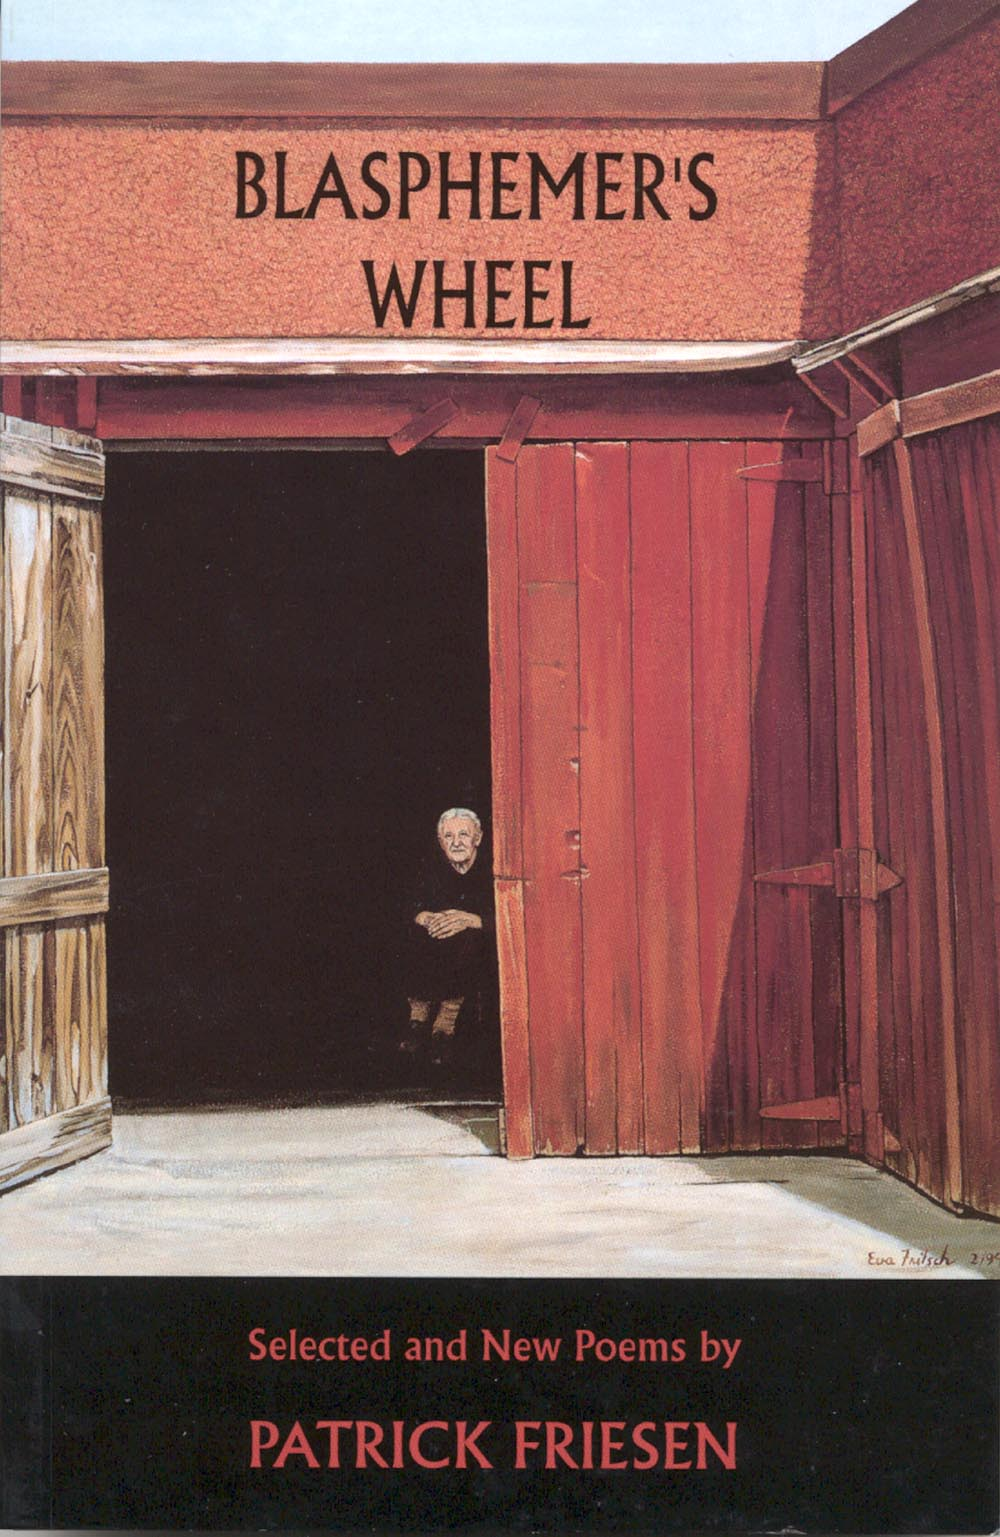 Blasphemer's Wheel by Patrick Friesen